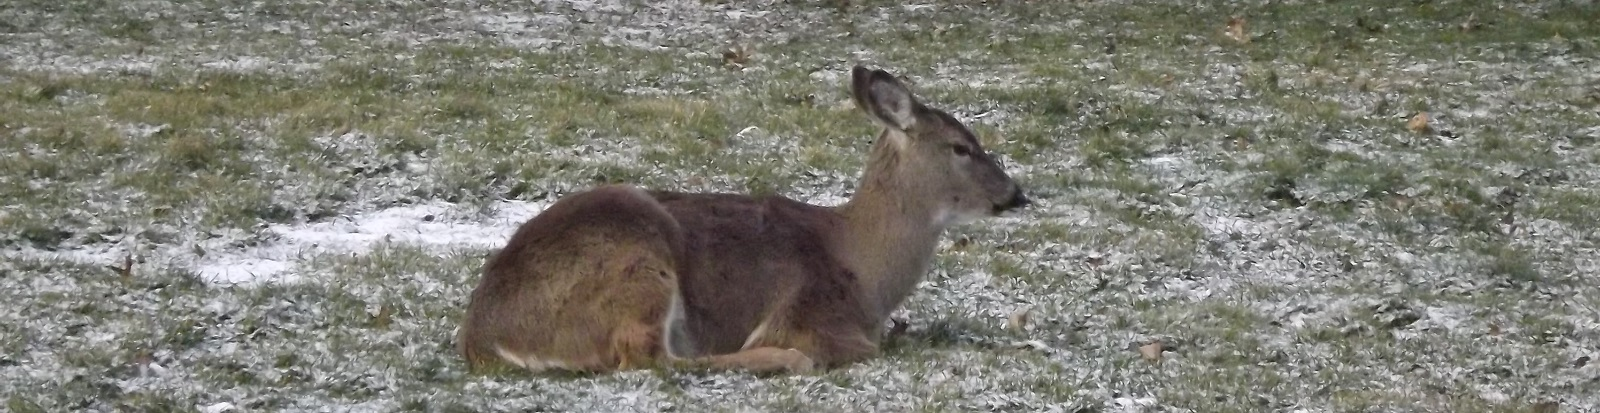 Deer Sitting in Yard